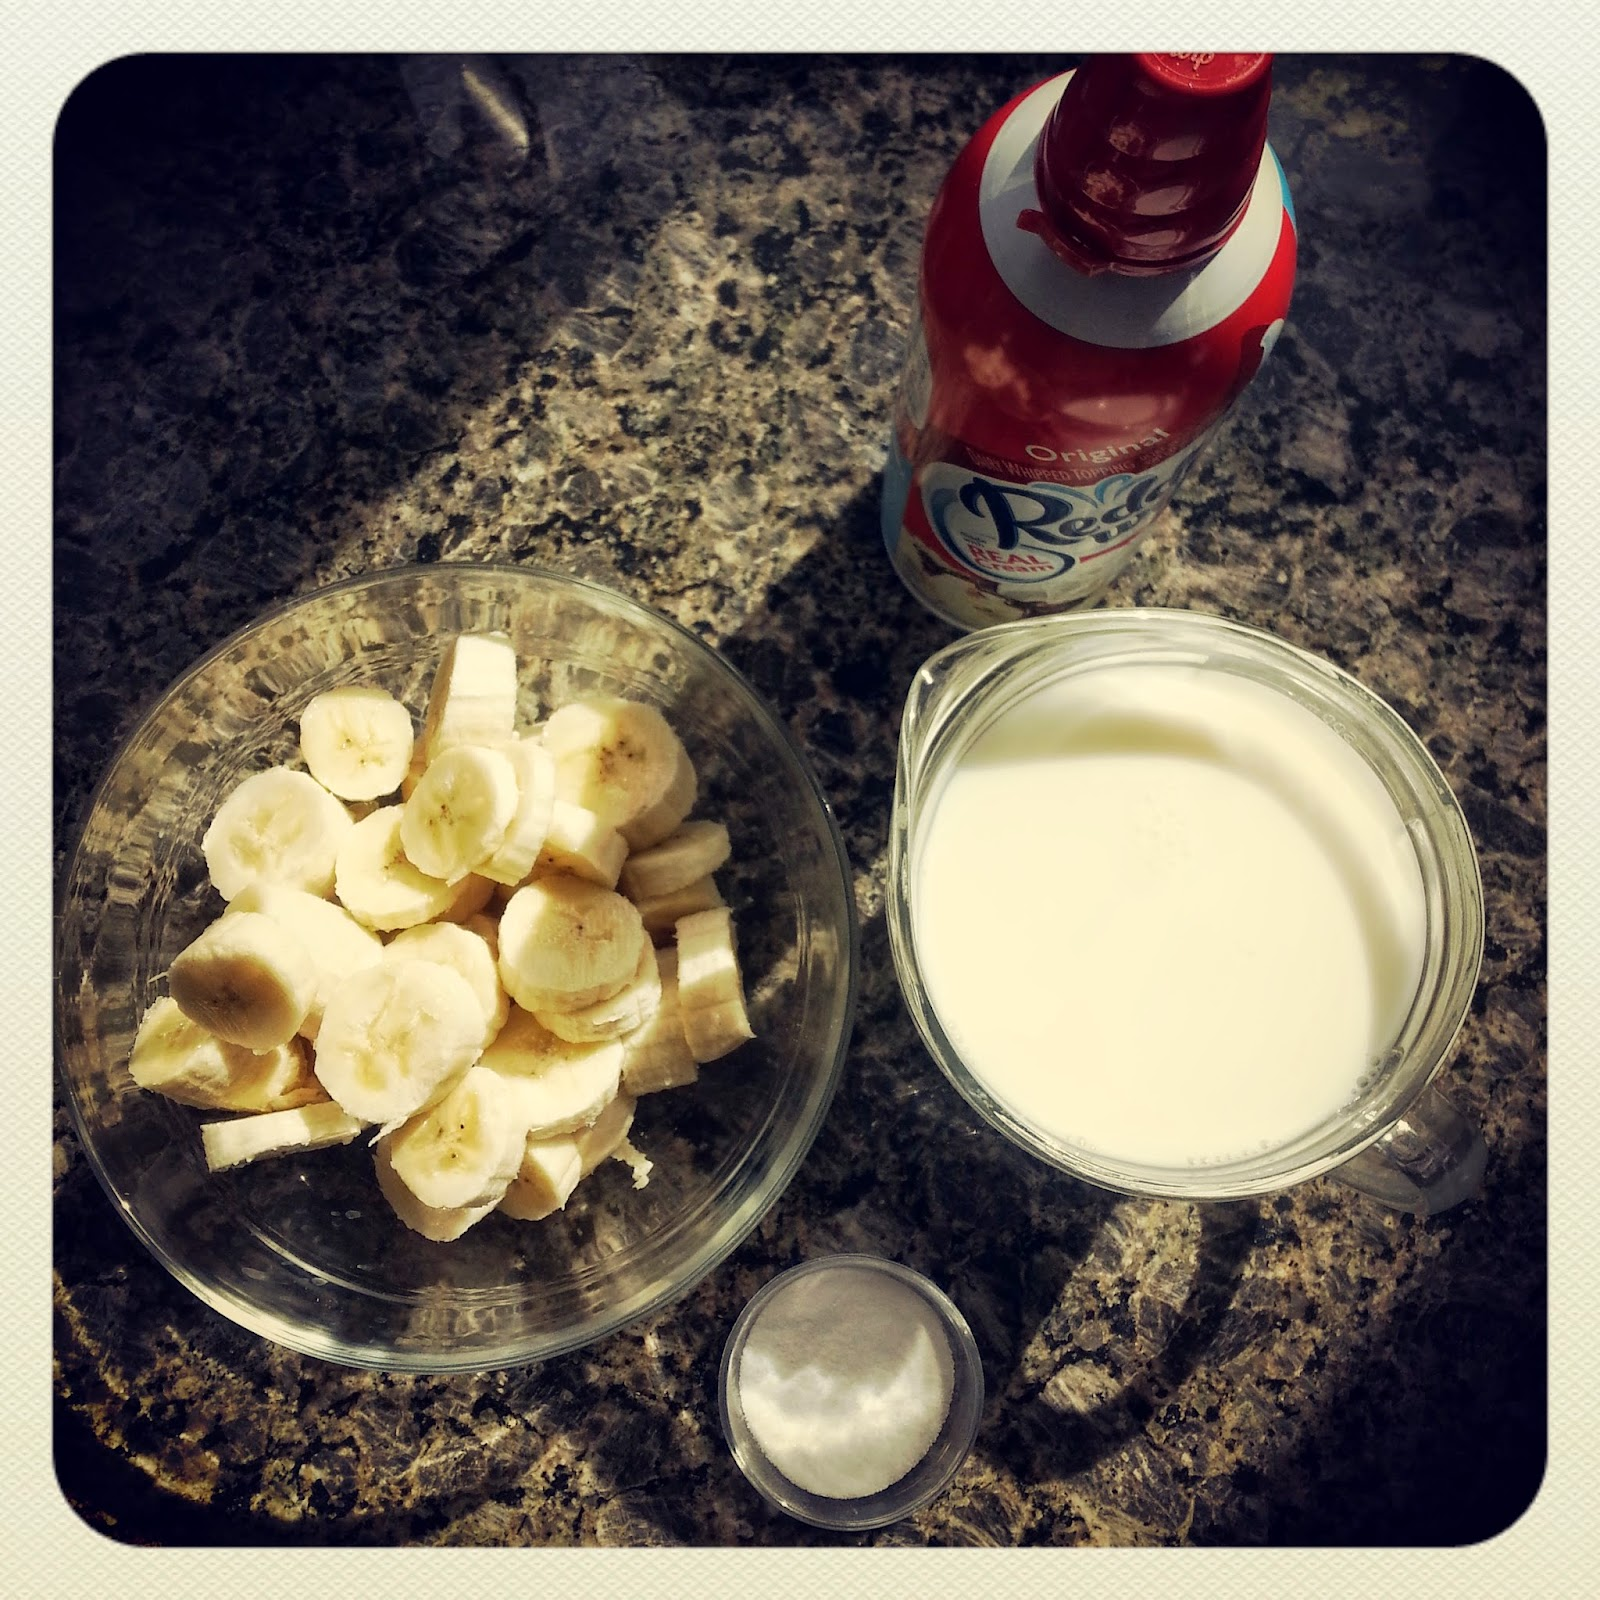 Receta au pair: Banana smoothie